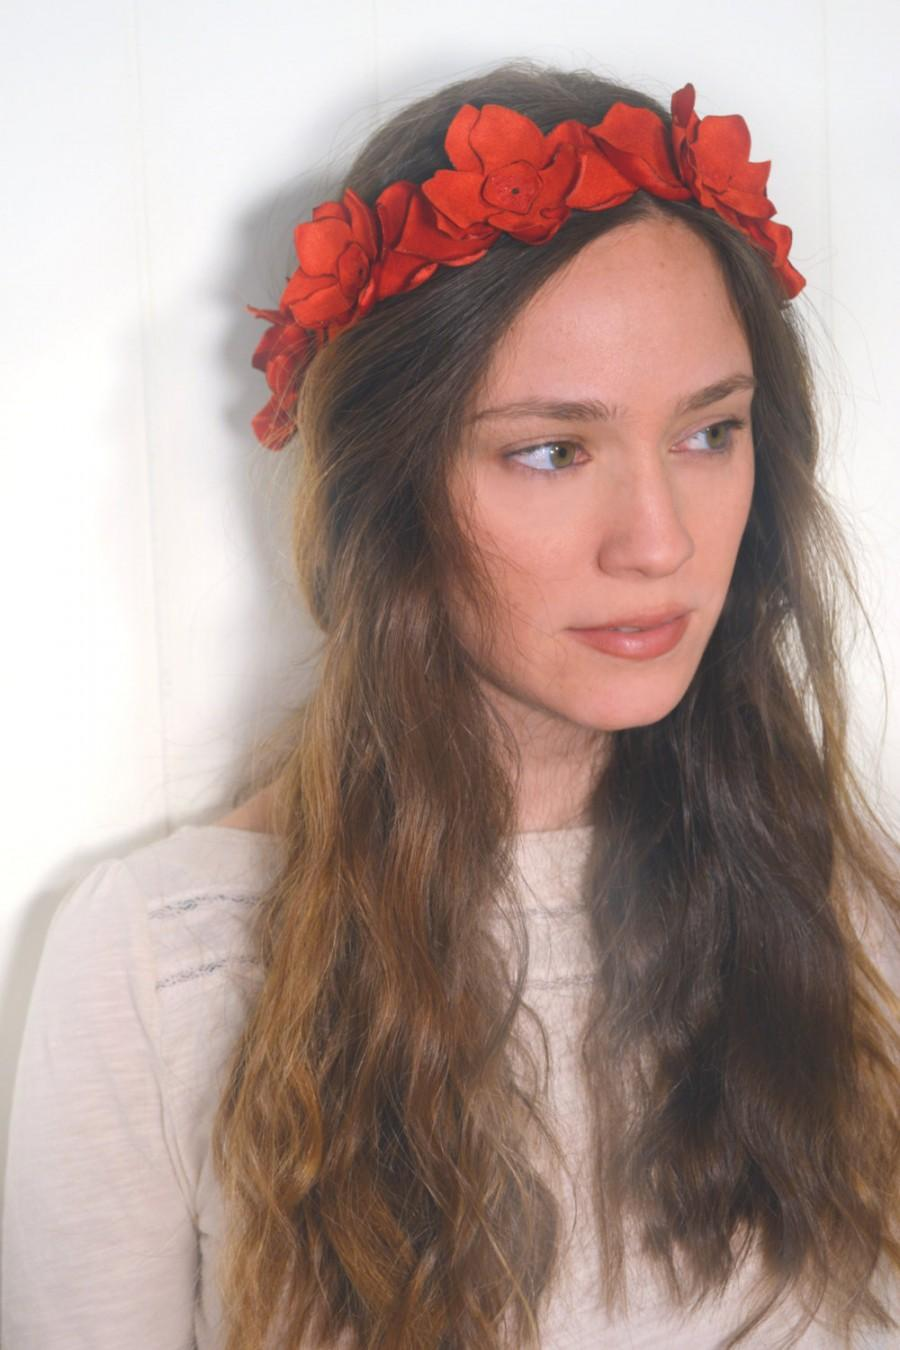 Valentines wedding red flower crown romantic bridal hairpiece valentines wedding red flower crown romantic bridal hairpiece bohemian bridesmaids sash rustic chic petal alley red headband pa1 27 izmirmasajfo